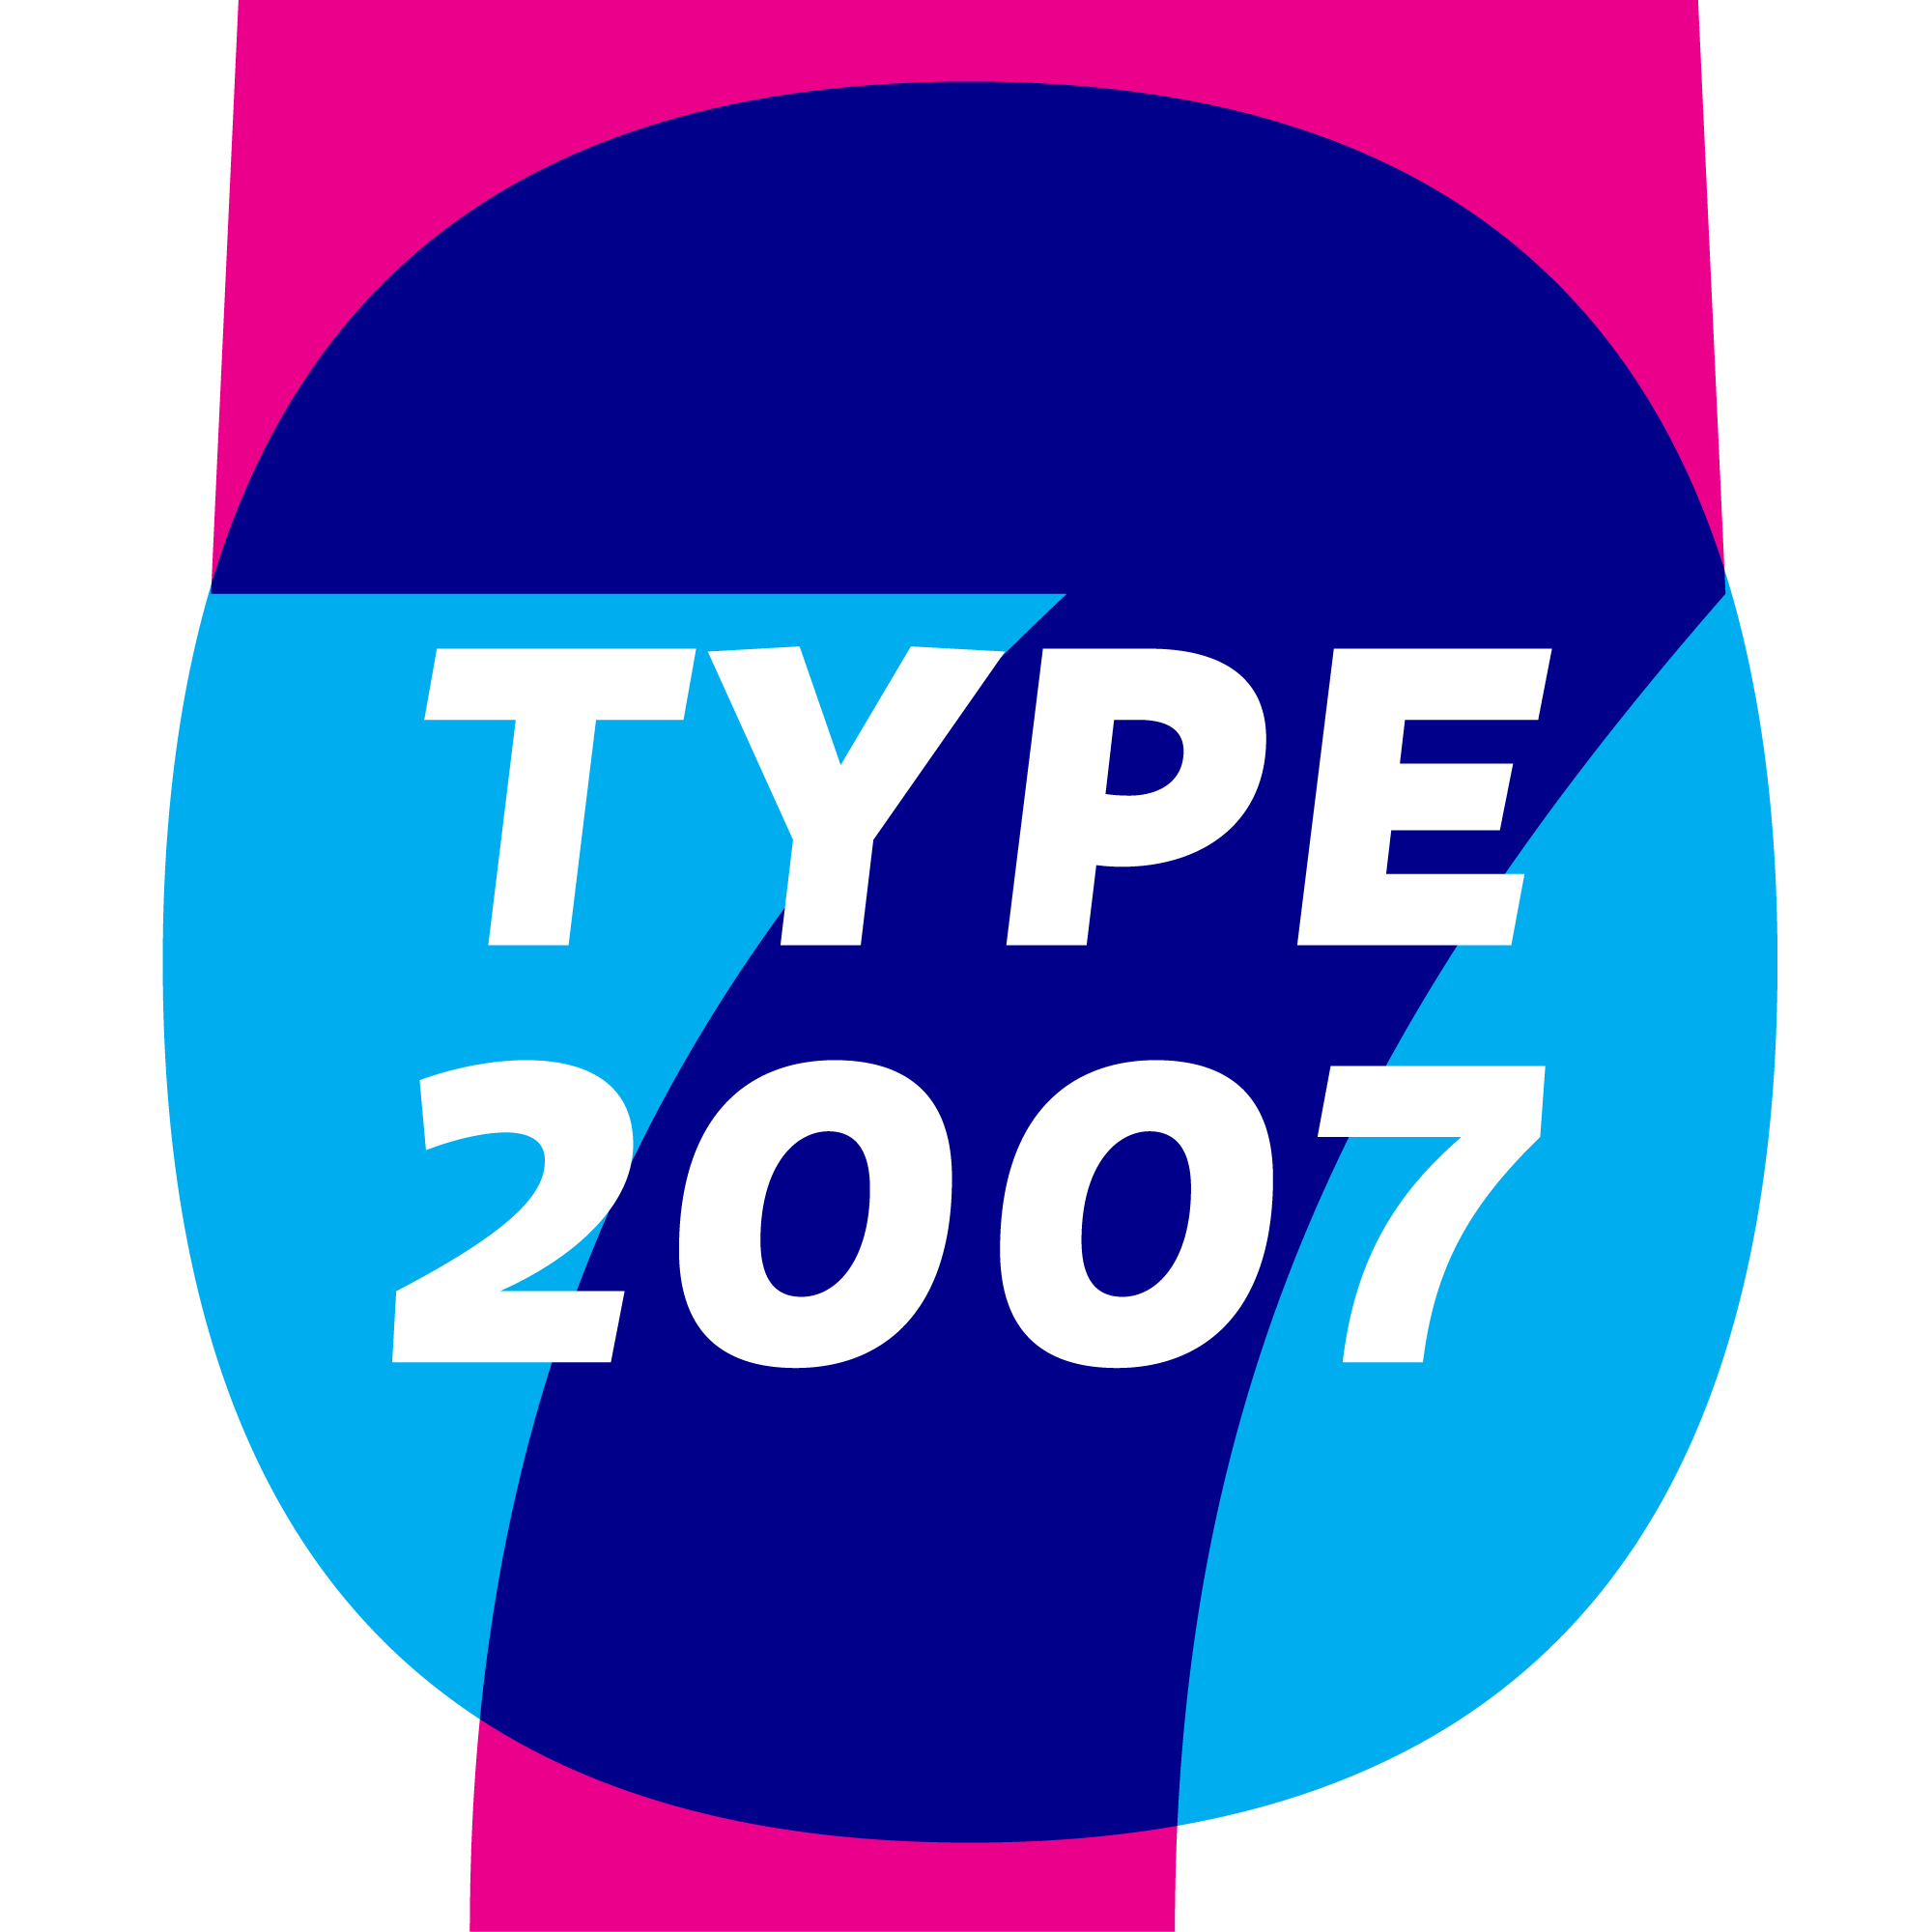 Best Fonts of 2007